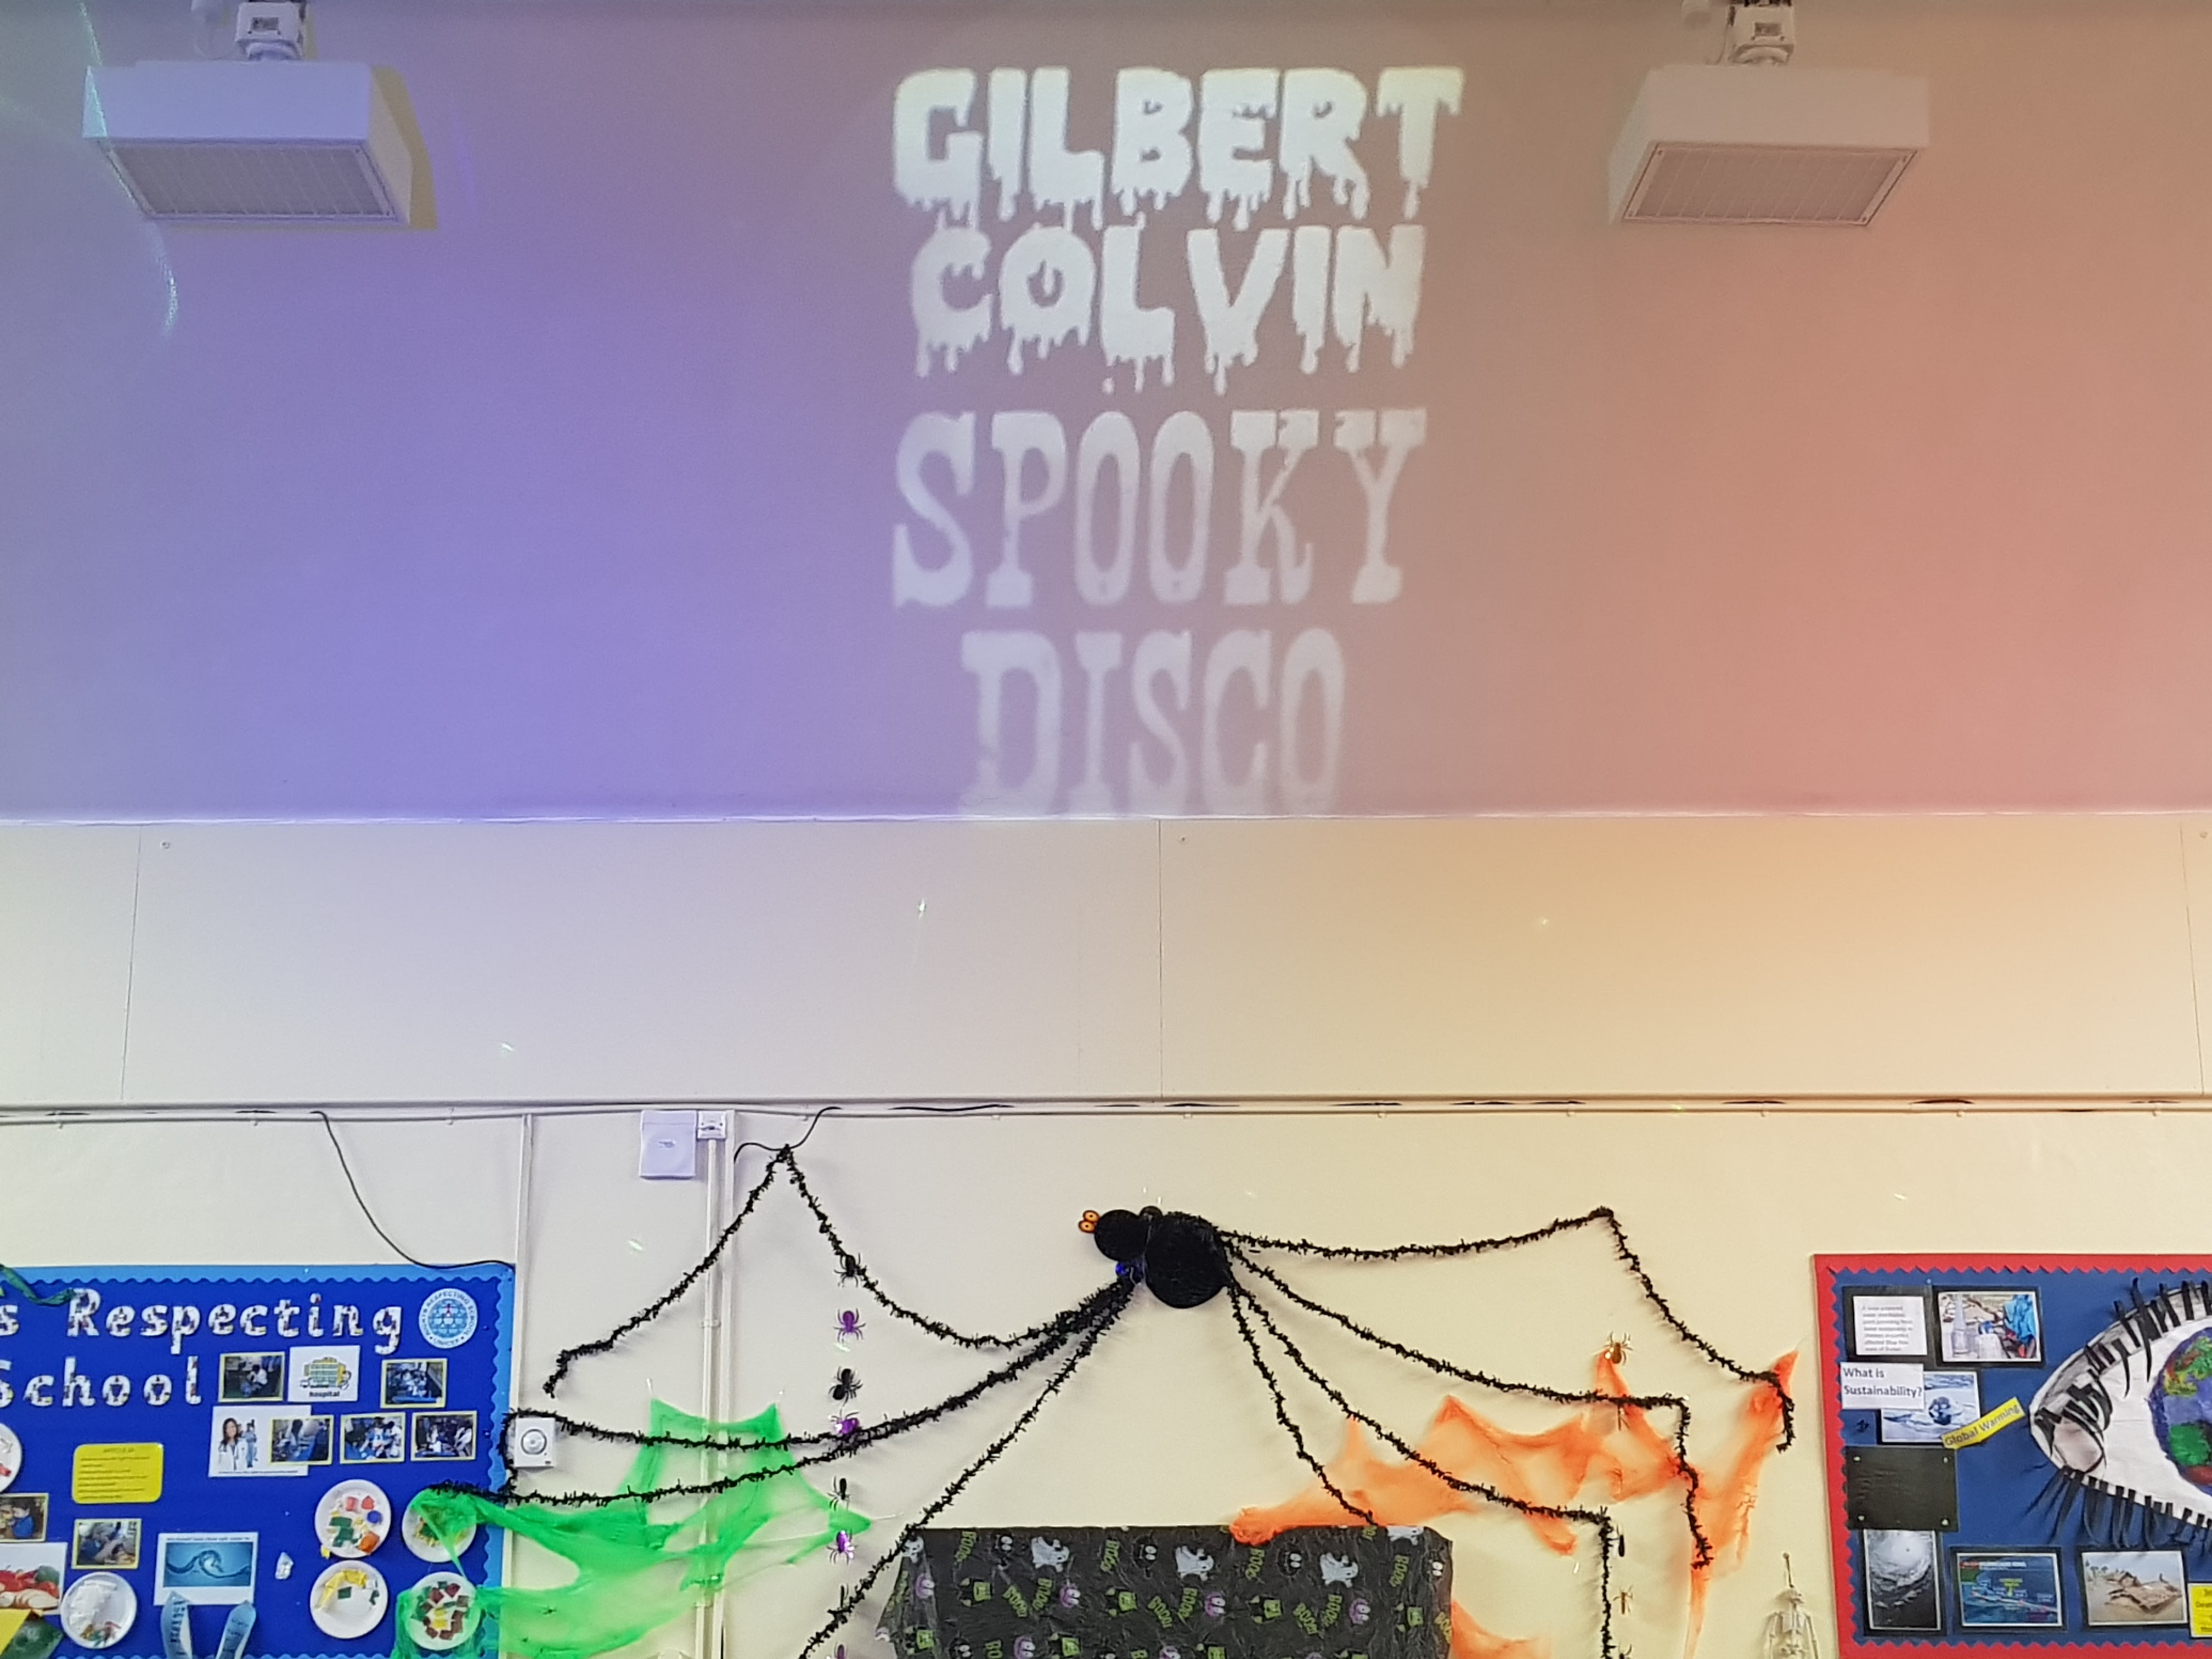 School Disco DJ - Spooky Disco